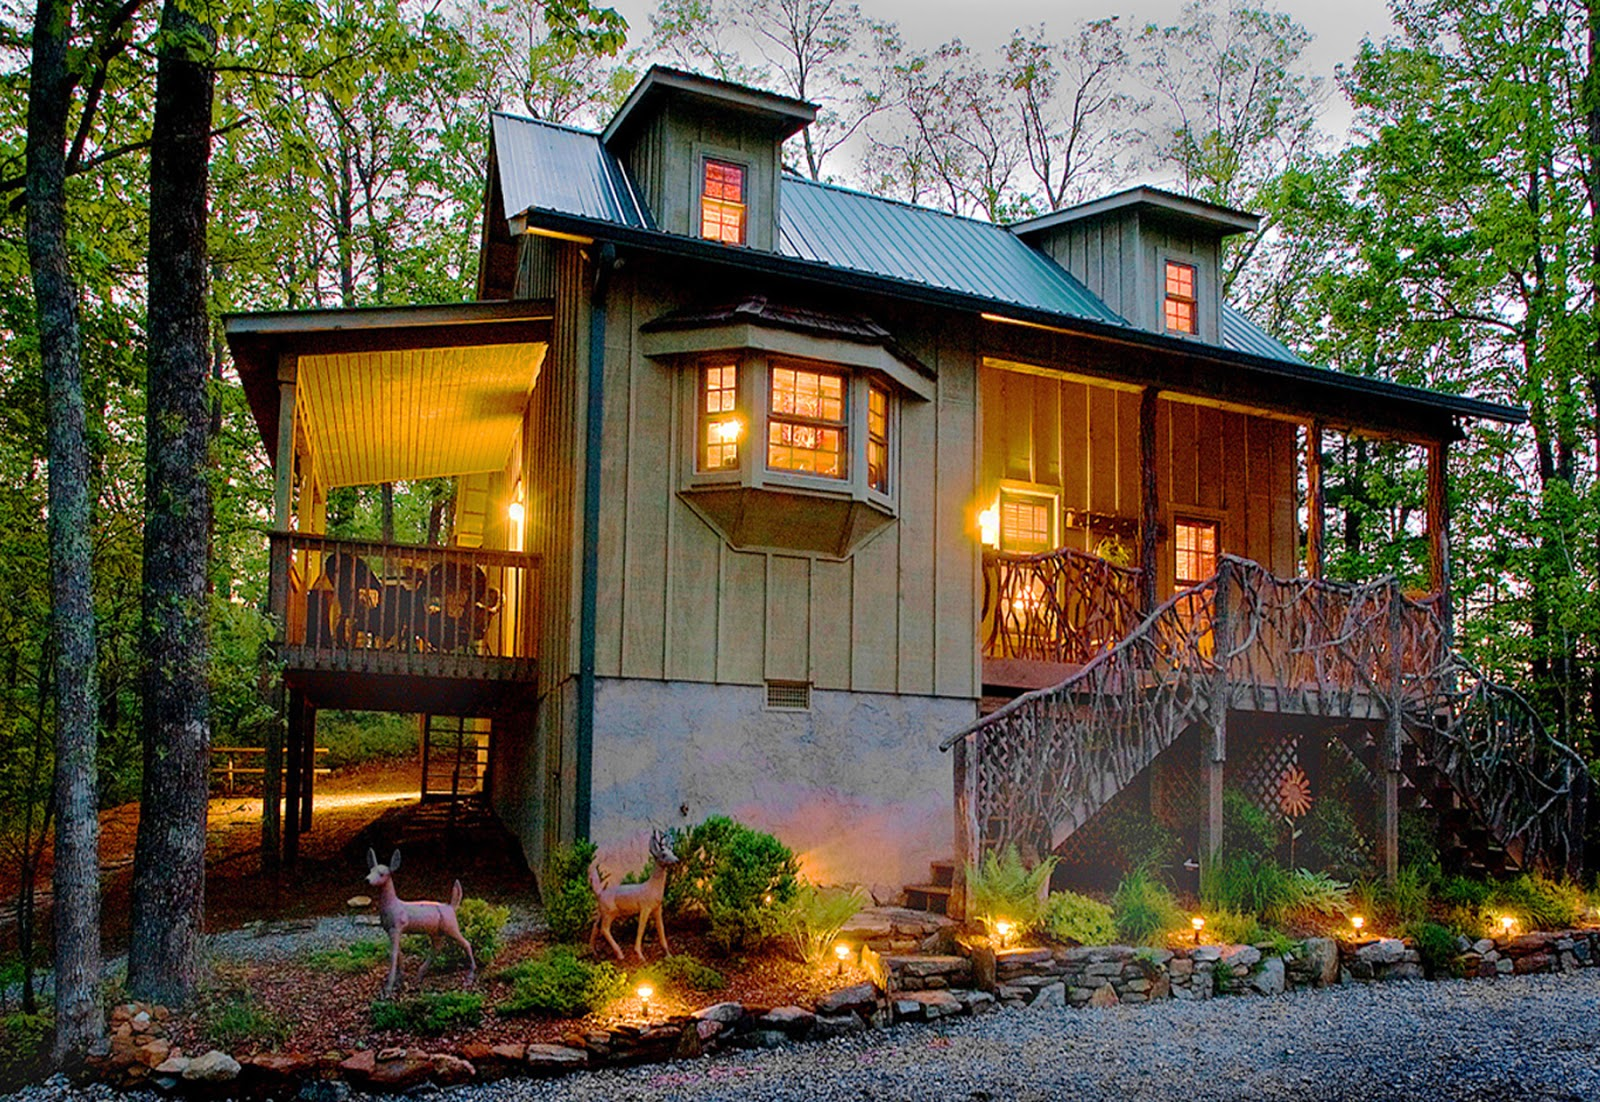 Christmas Cabin Rentals.A Free Daily Visitor Guide For The North Carolina Mountains